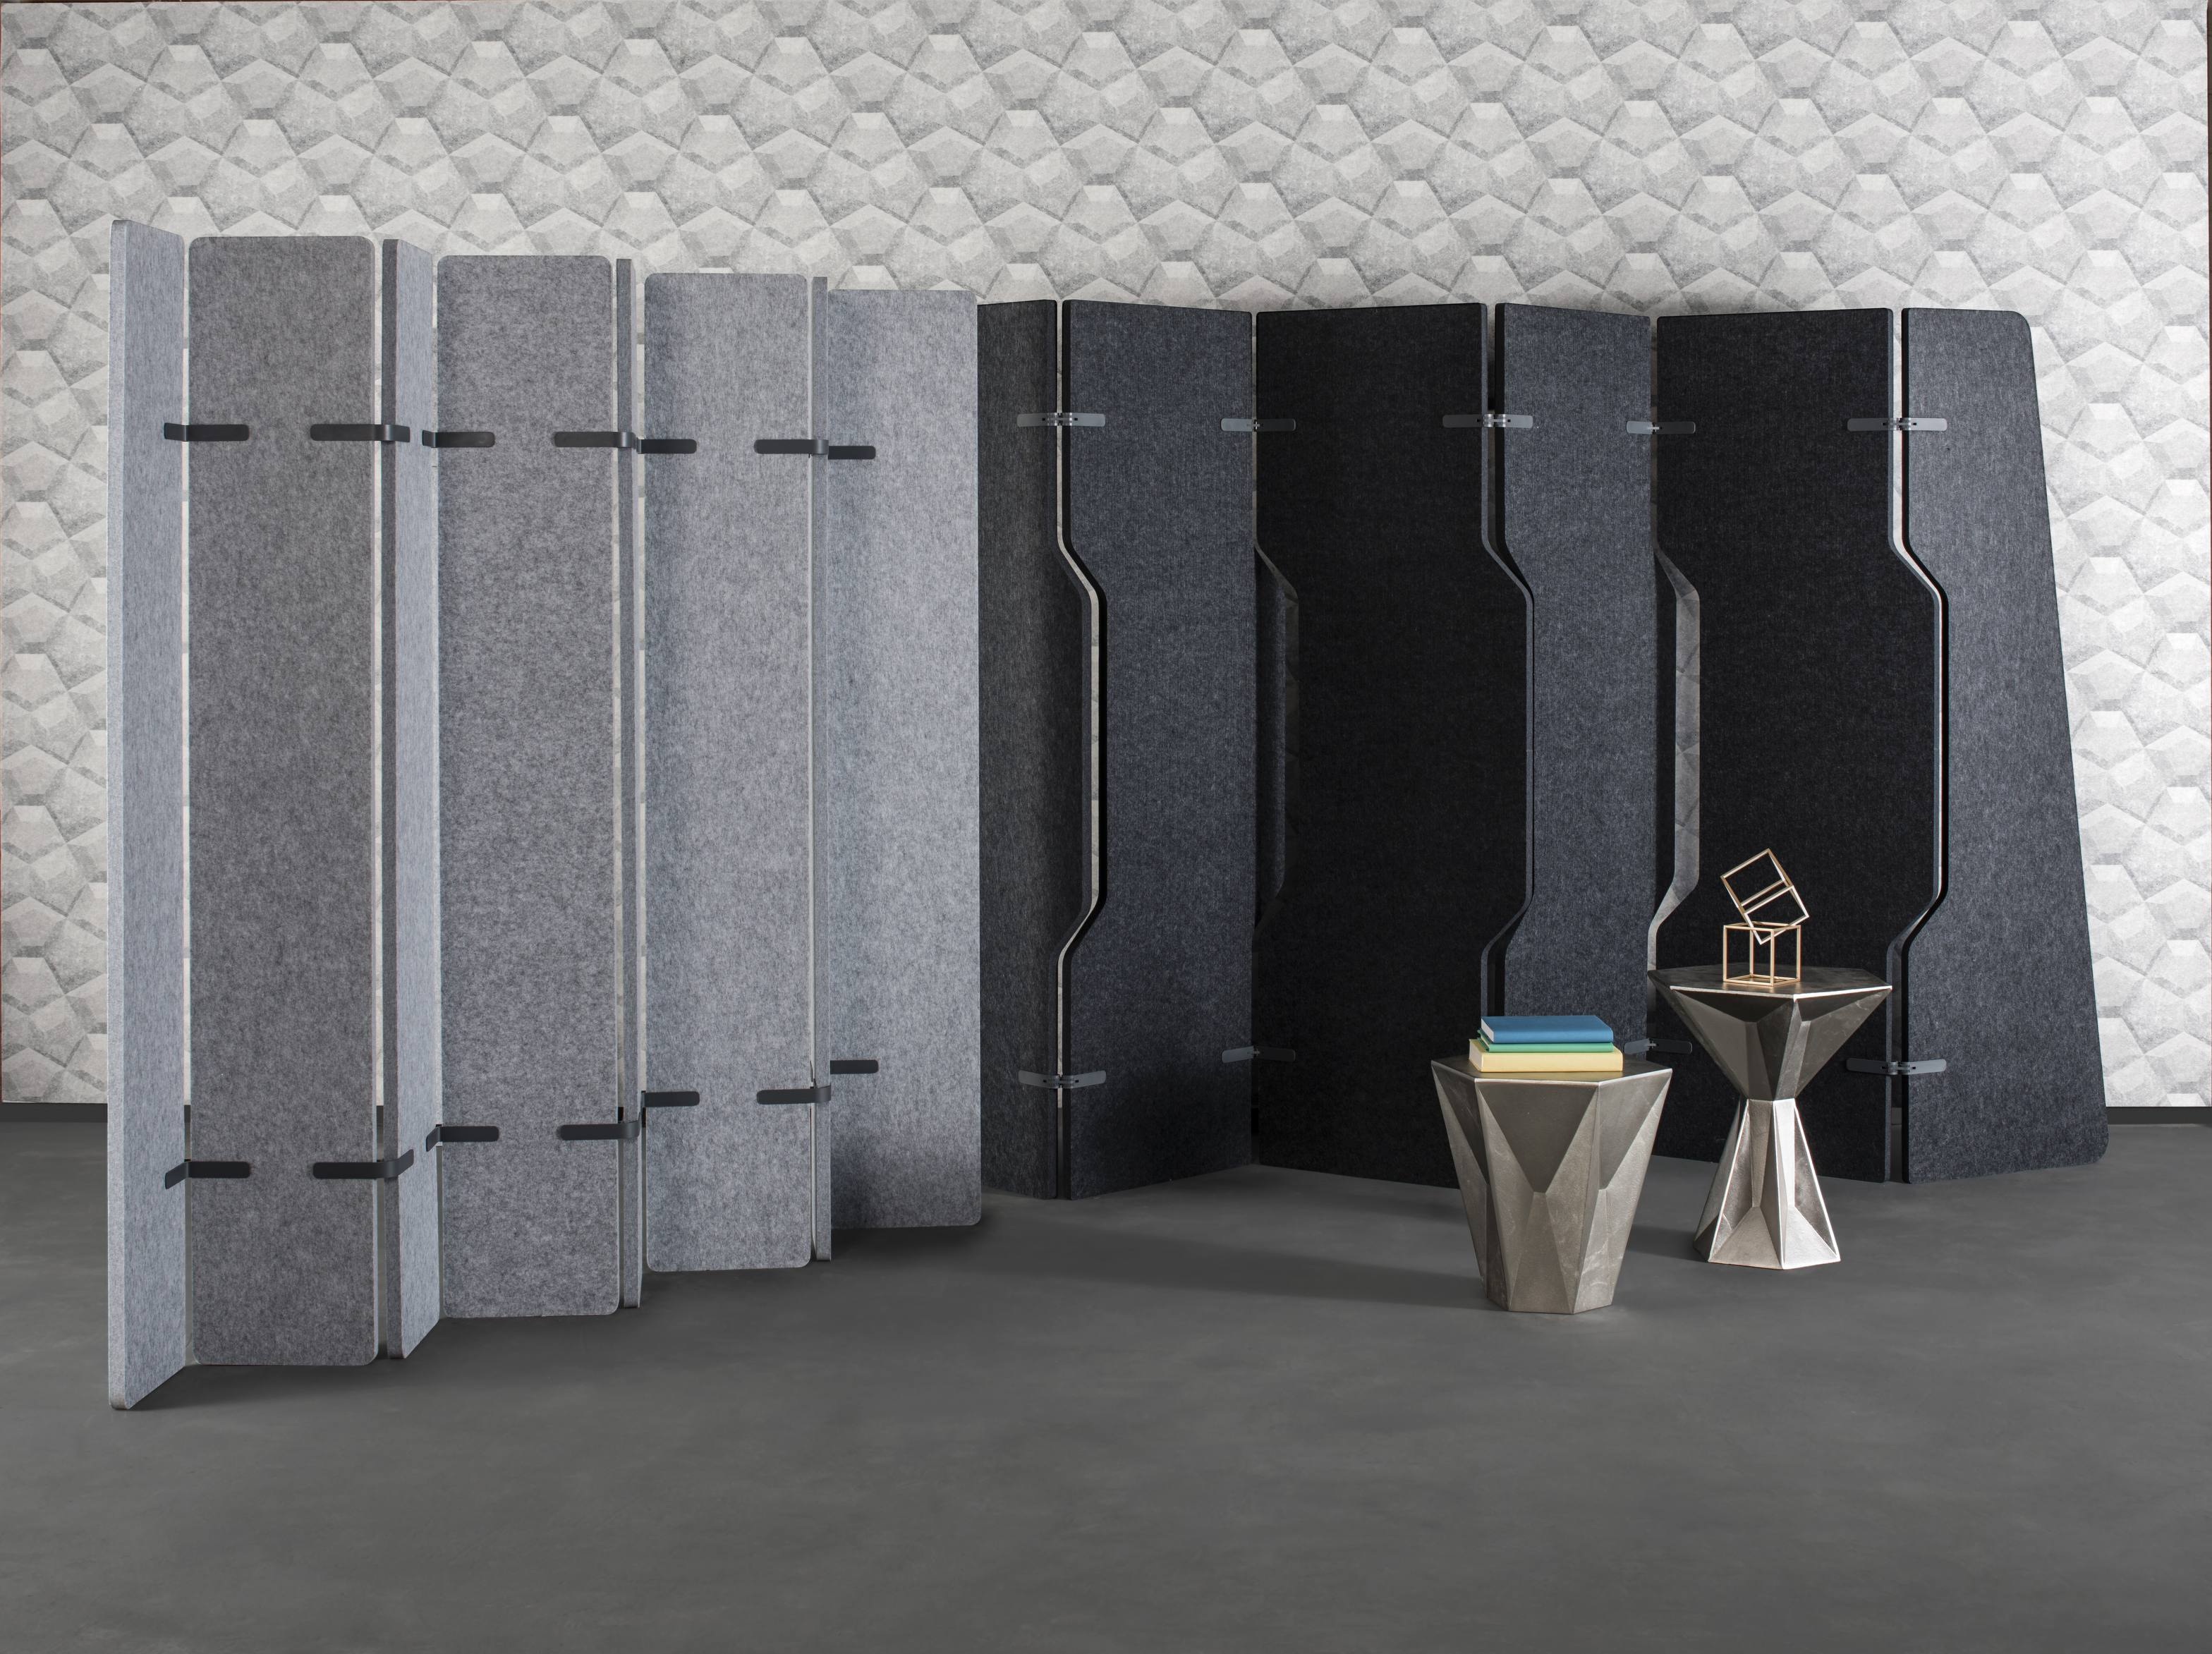 Ep-Partition-Paling-442-Platoon-542-Office-Divider-Woven-Image-2